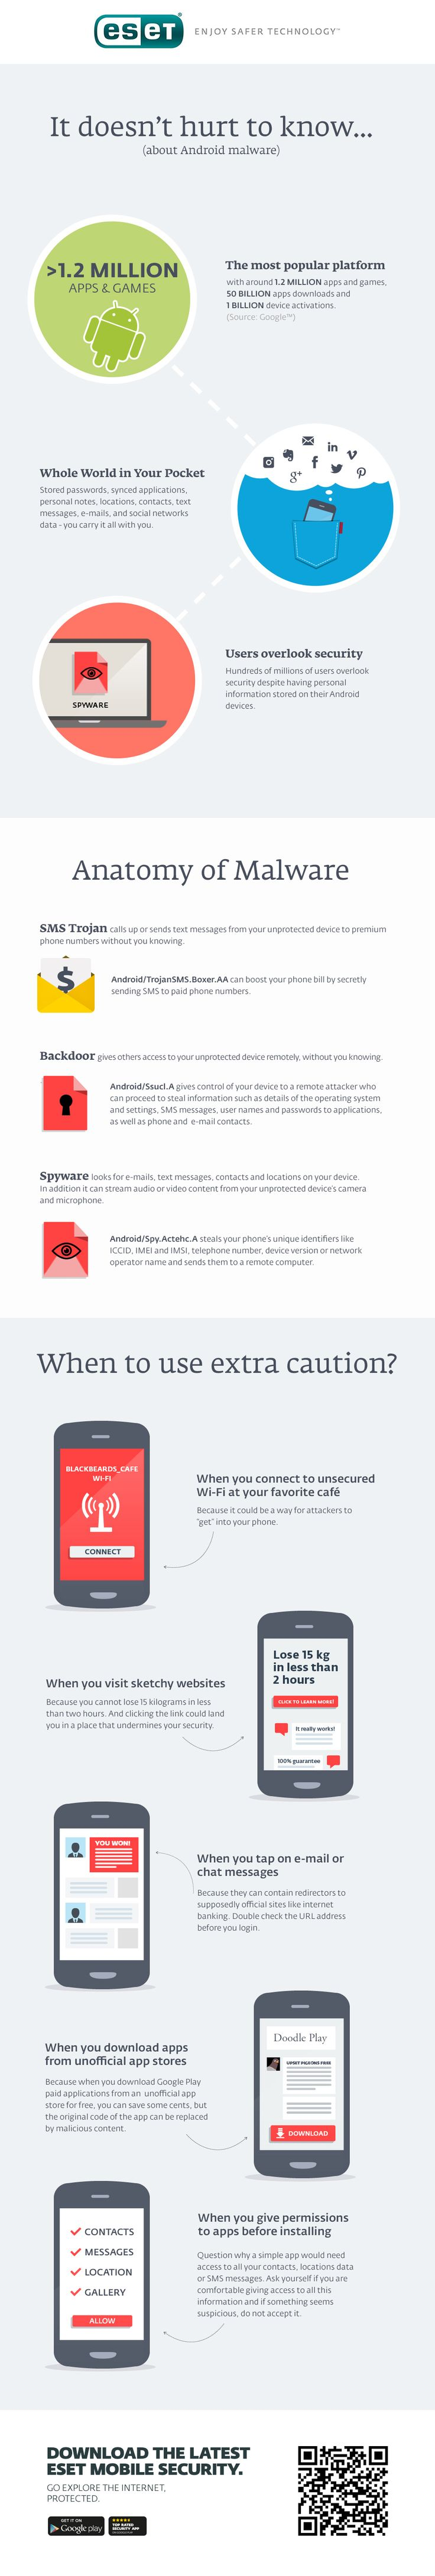 ESET Infographic | Need to know